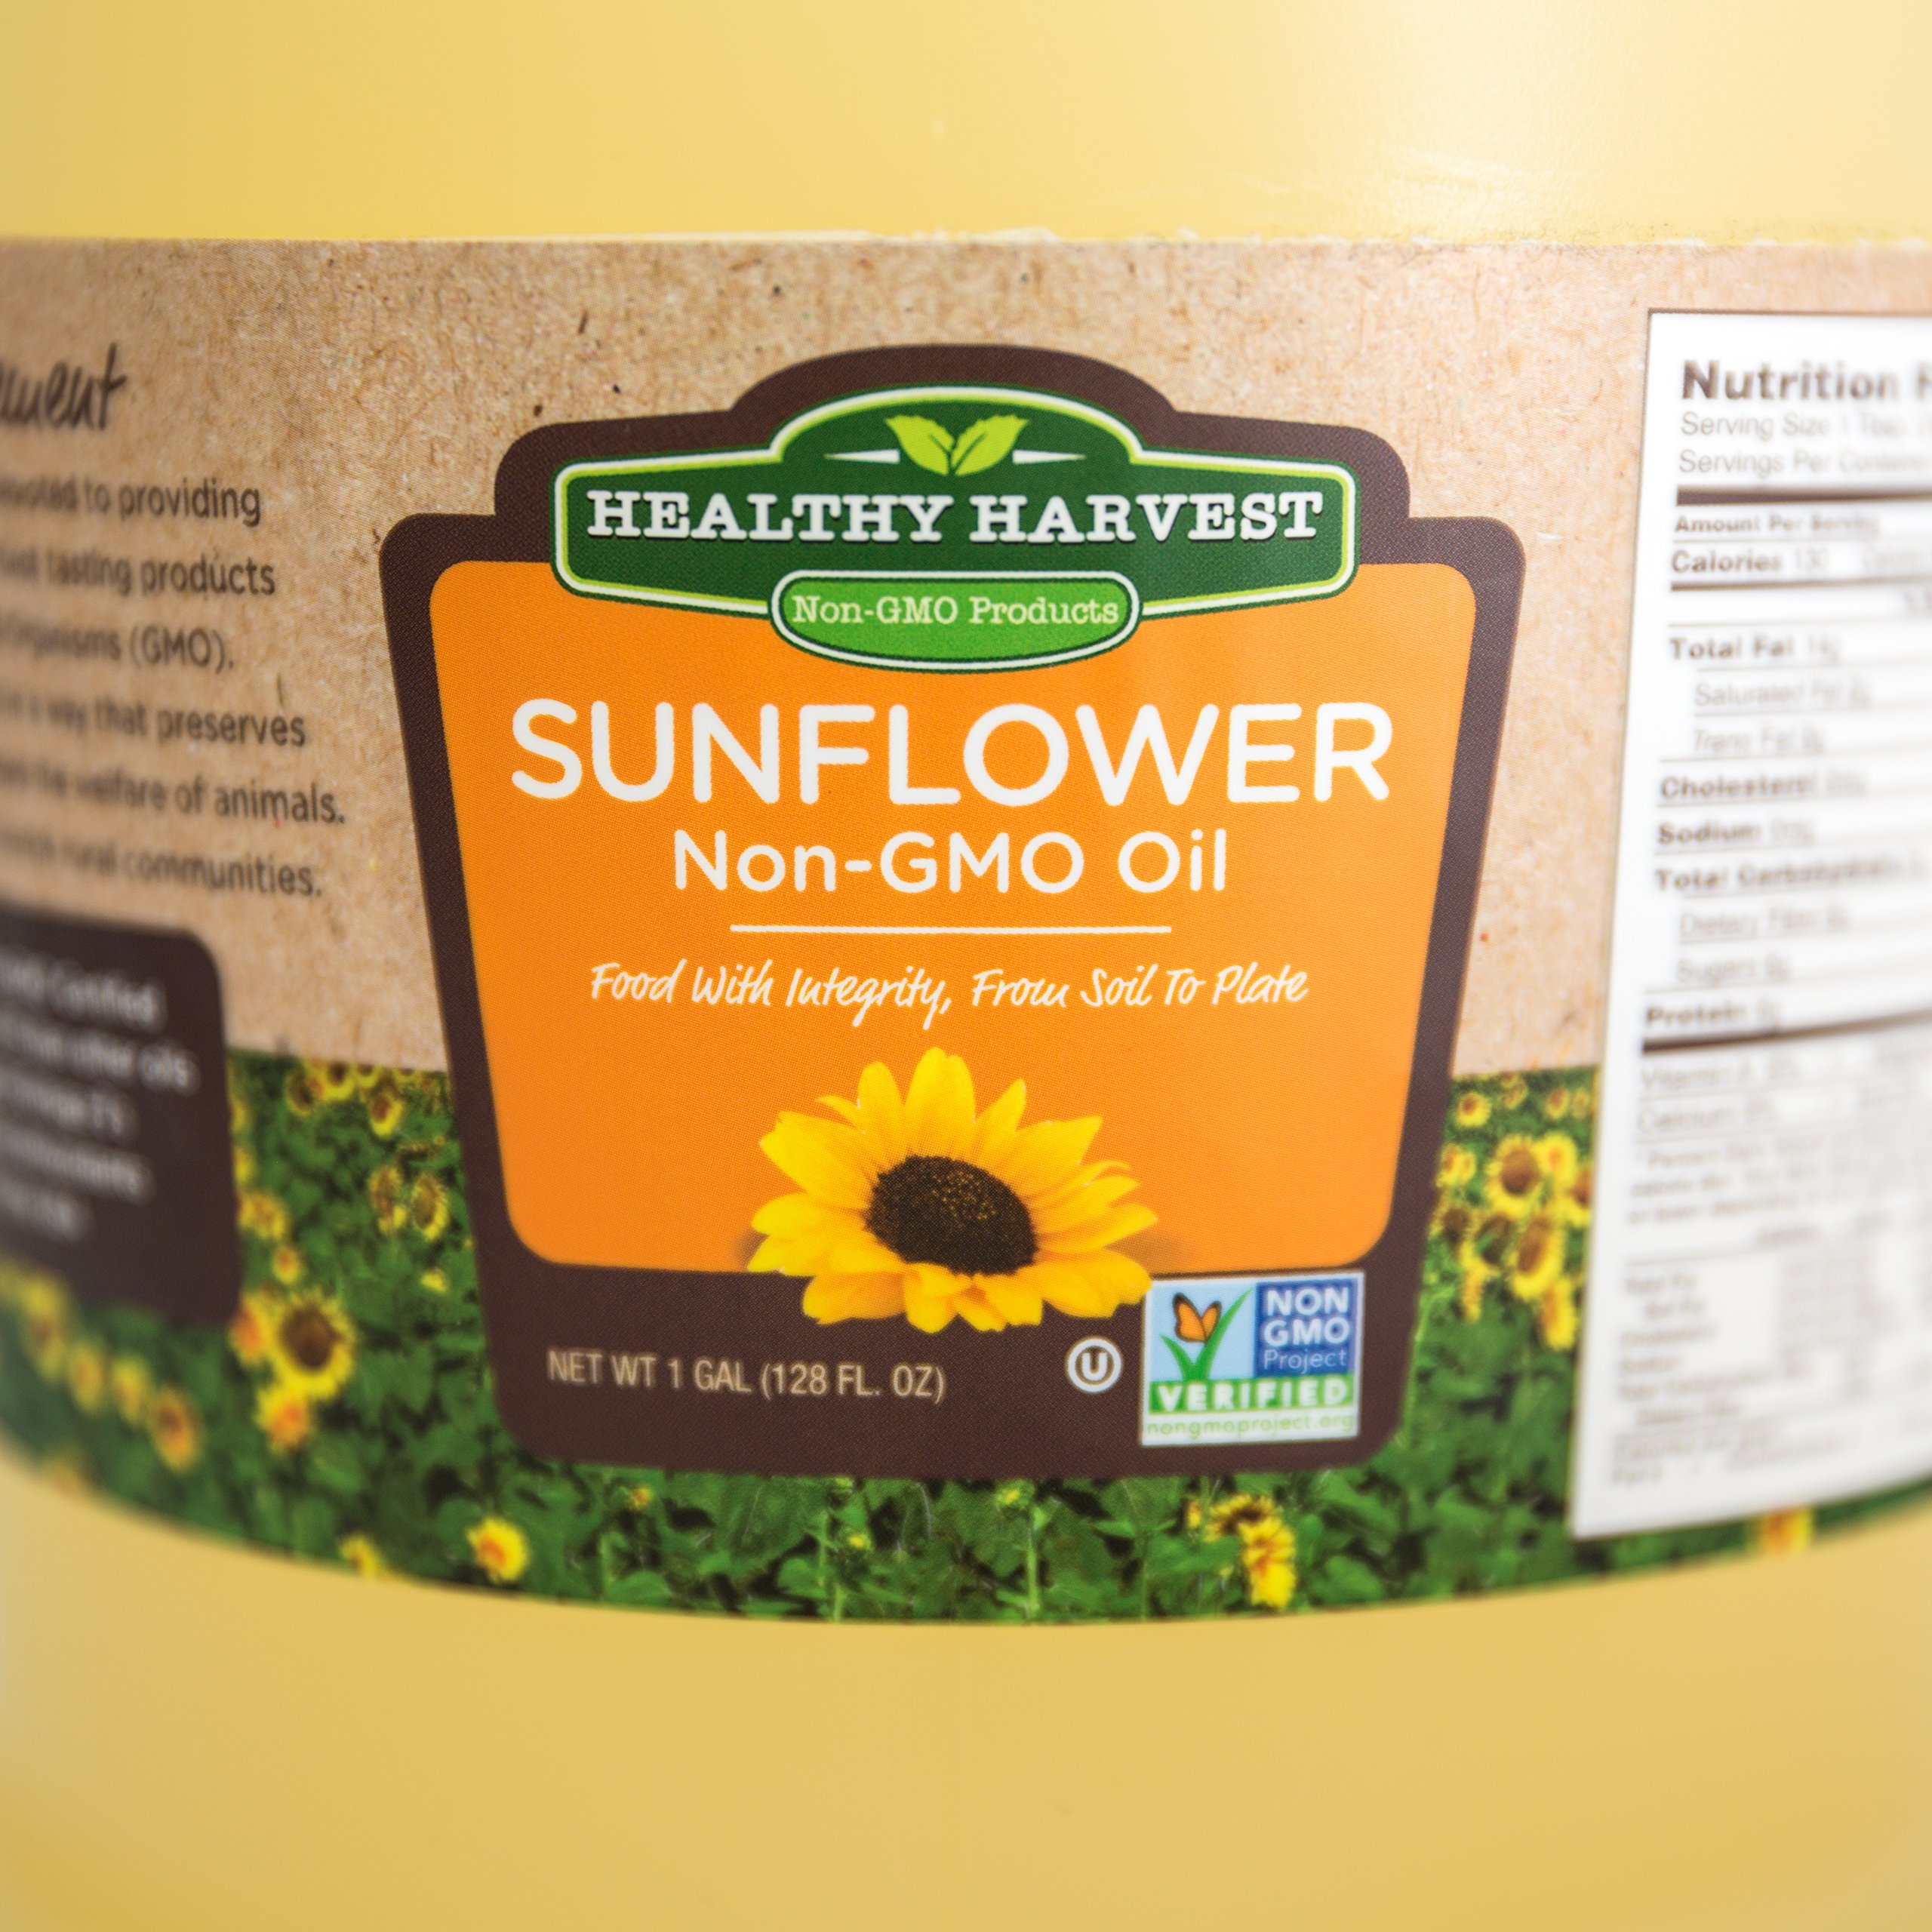 Healthy Harvest Non-GMO Sunflower Oil - Healthy Cooking Oil for Cooking, Baking, Frying & More - Naturally Processed to Retain Natural Antioxidants {One Gallon} by Healthy Harvest Productions (Image #3)